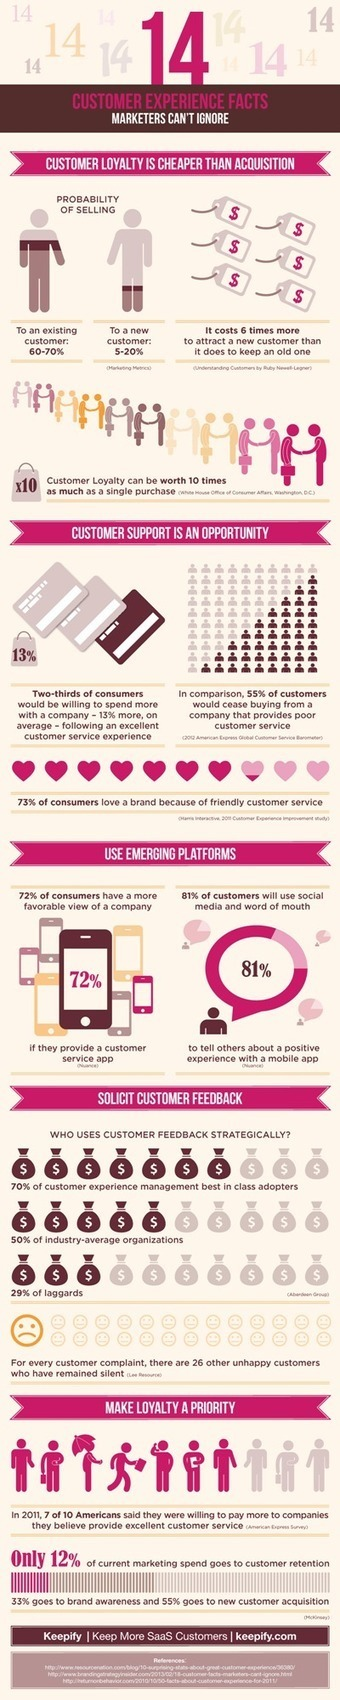 Two More Customer Experience Facts and Suggestions You Can't Ignore [Infographic] - Business 2 Community | Customer Buying Journey | Scoop.it